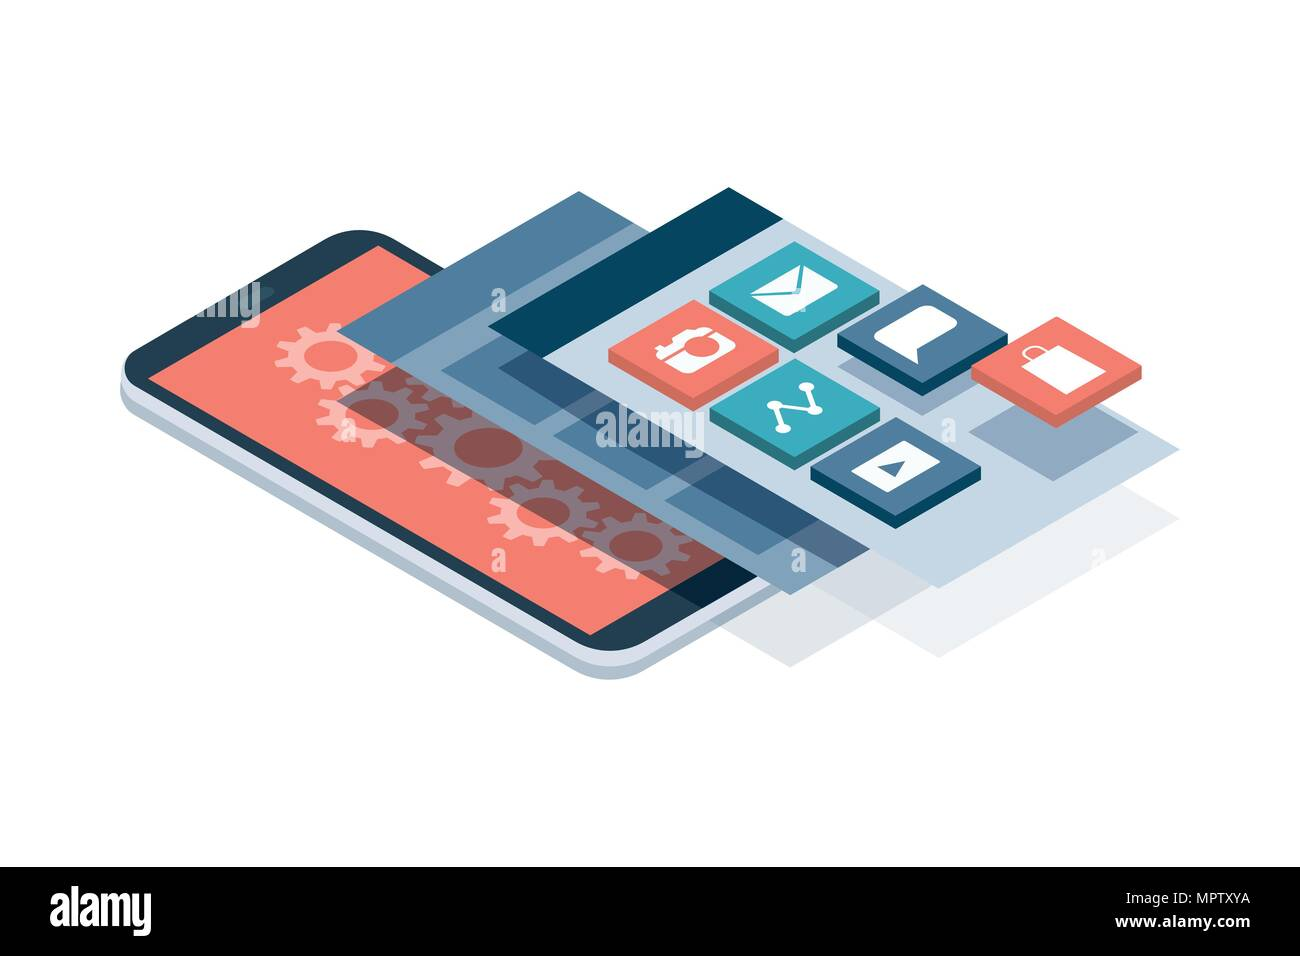 App development and web design: layered user interfaces and screens on a touch screen smartphone Stock Vector